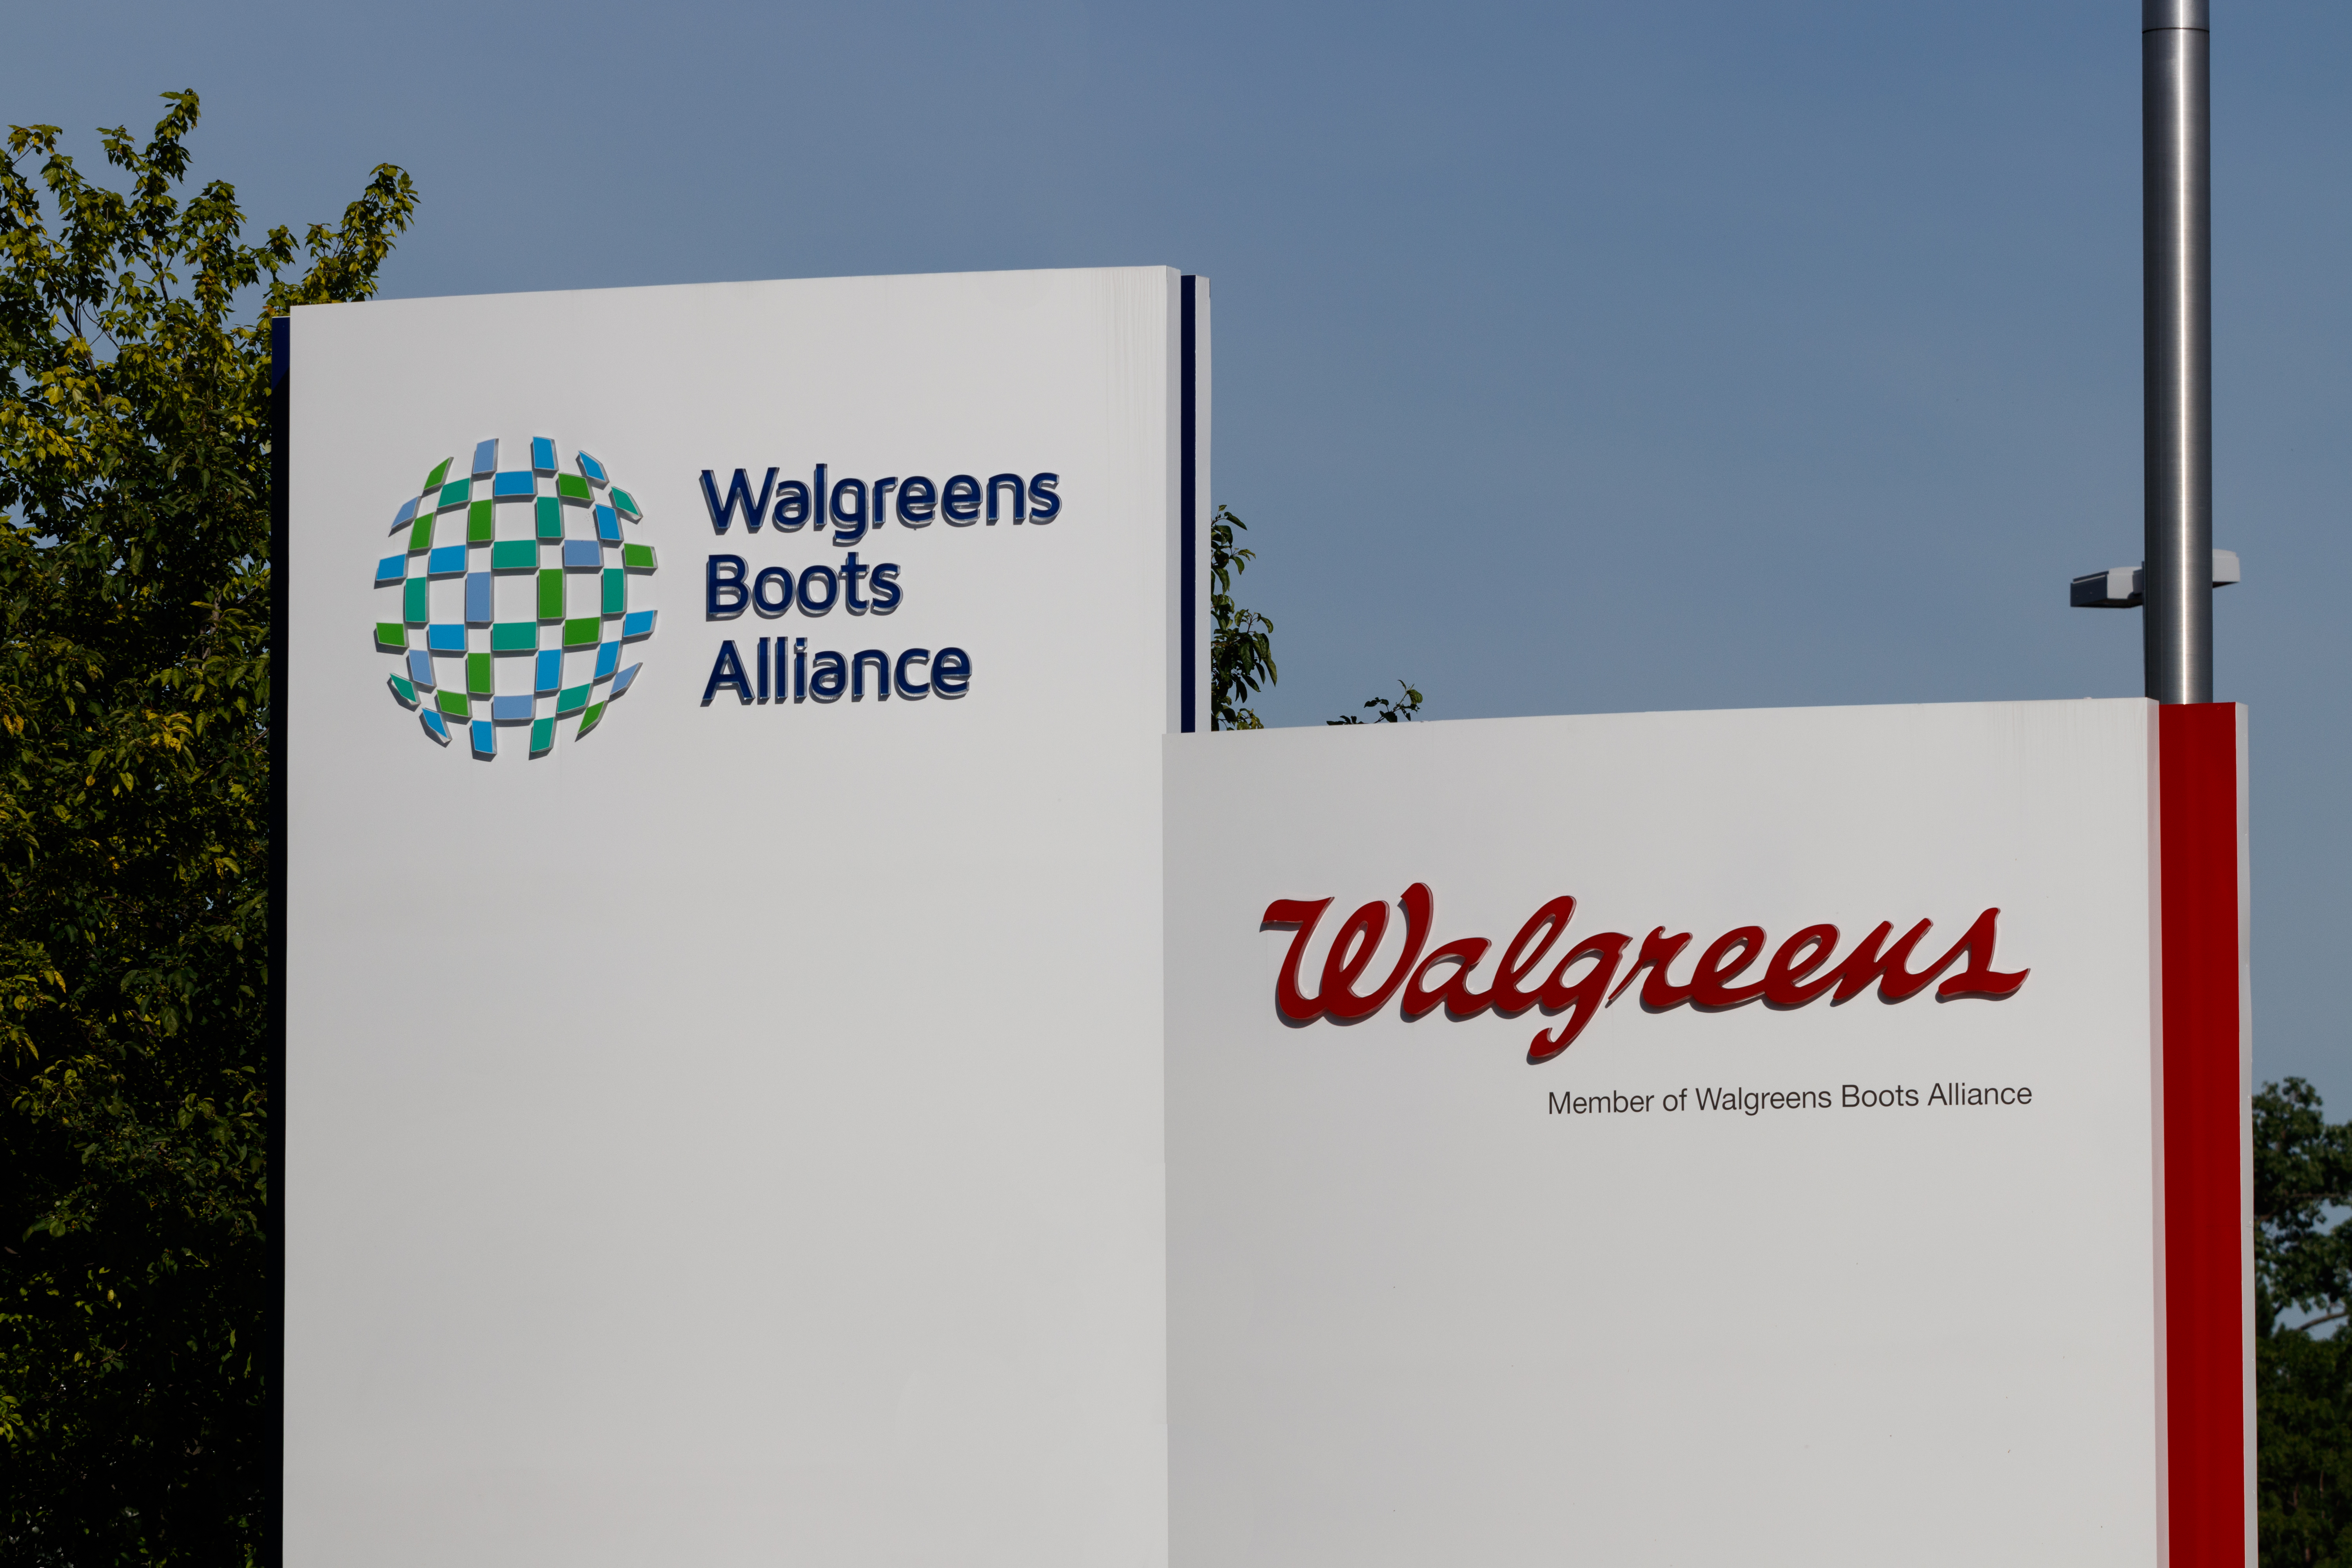 Deerfield - Circa June 2019: Walgreens Boots Alliance Headquarters. WBA brought together Walgreens and Alliance Boots pharmaceuticals.